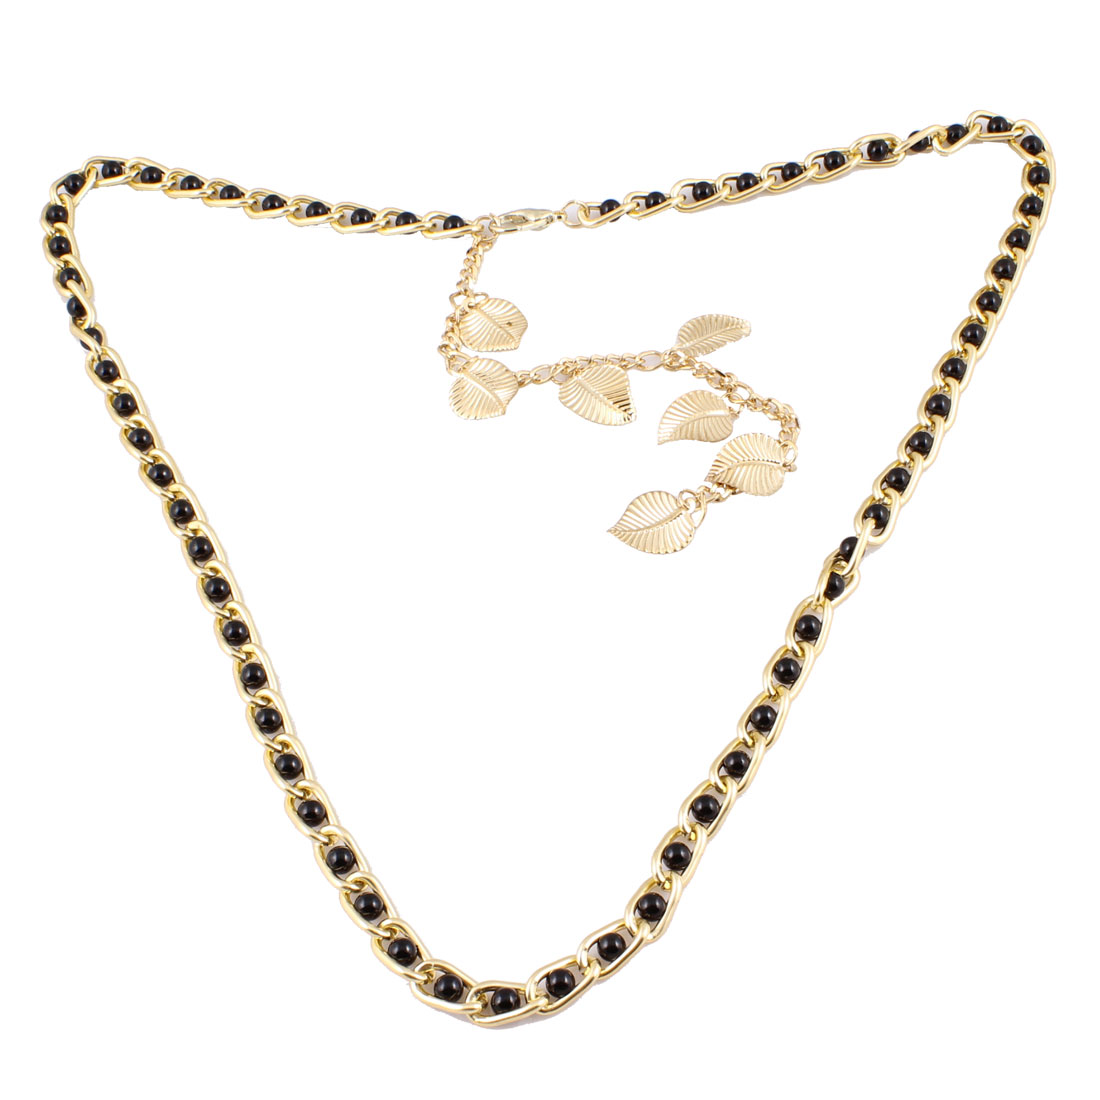 "Woman 41"" Length Metallic Leaves Pendent 0.2"" Dia Faux Pearl Waist Curb Chain Gold Tone Black"